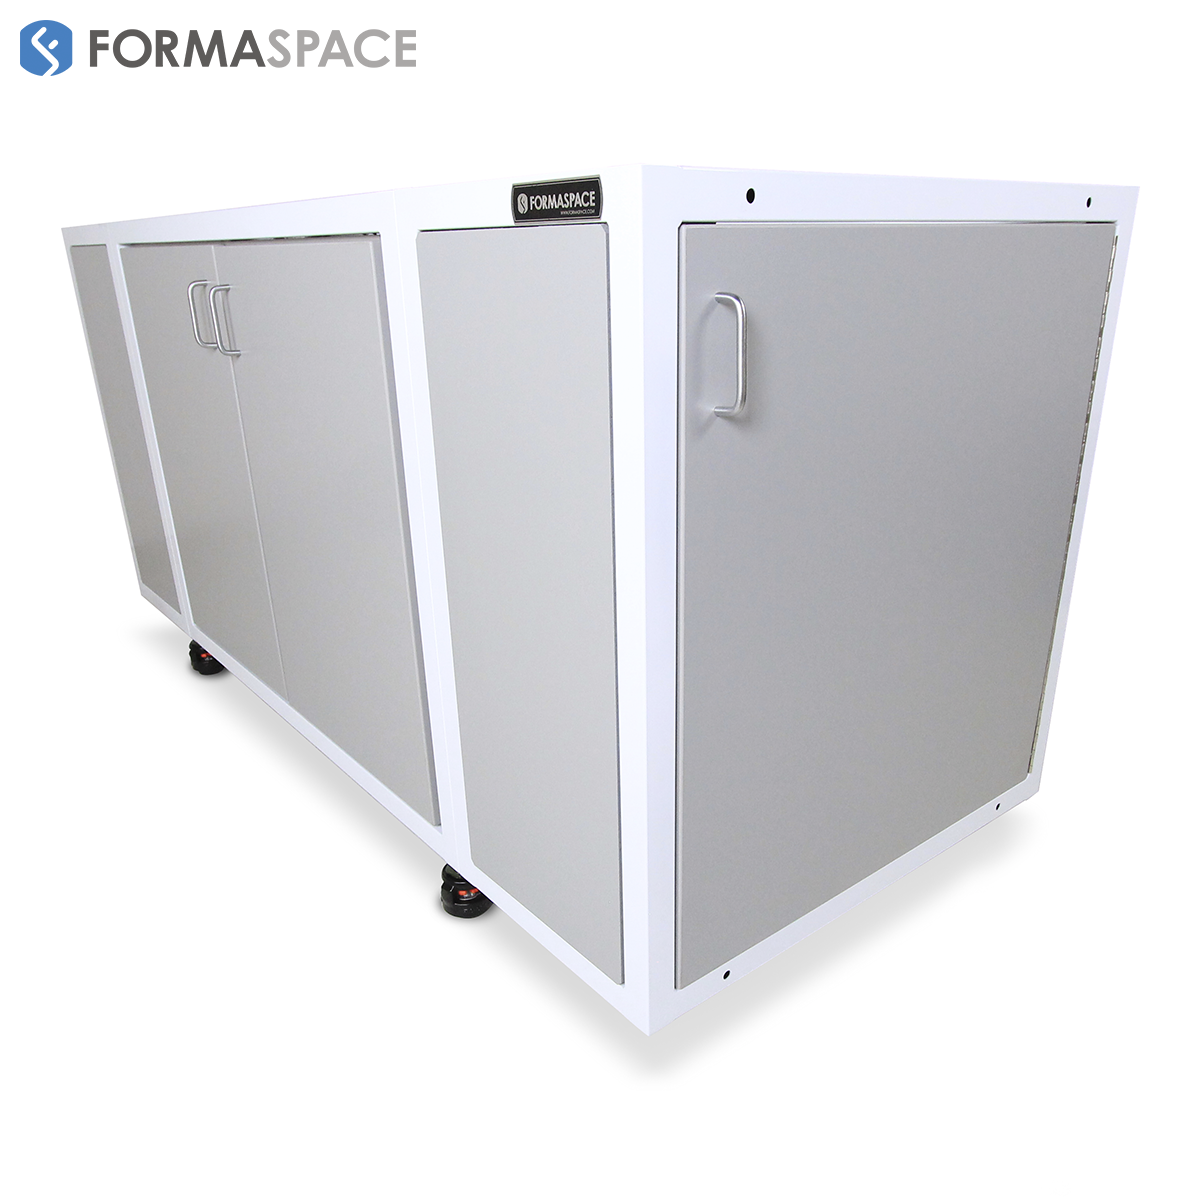 mobile kitting base with center and side cabinets